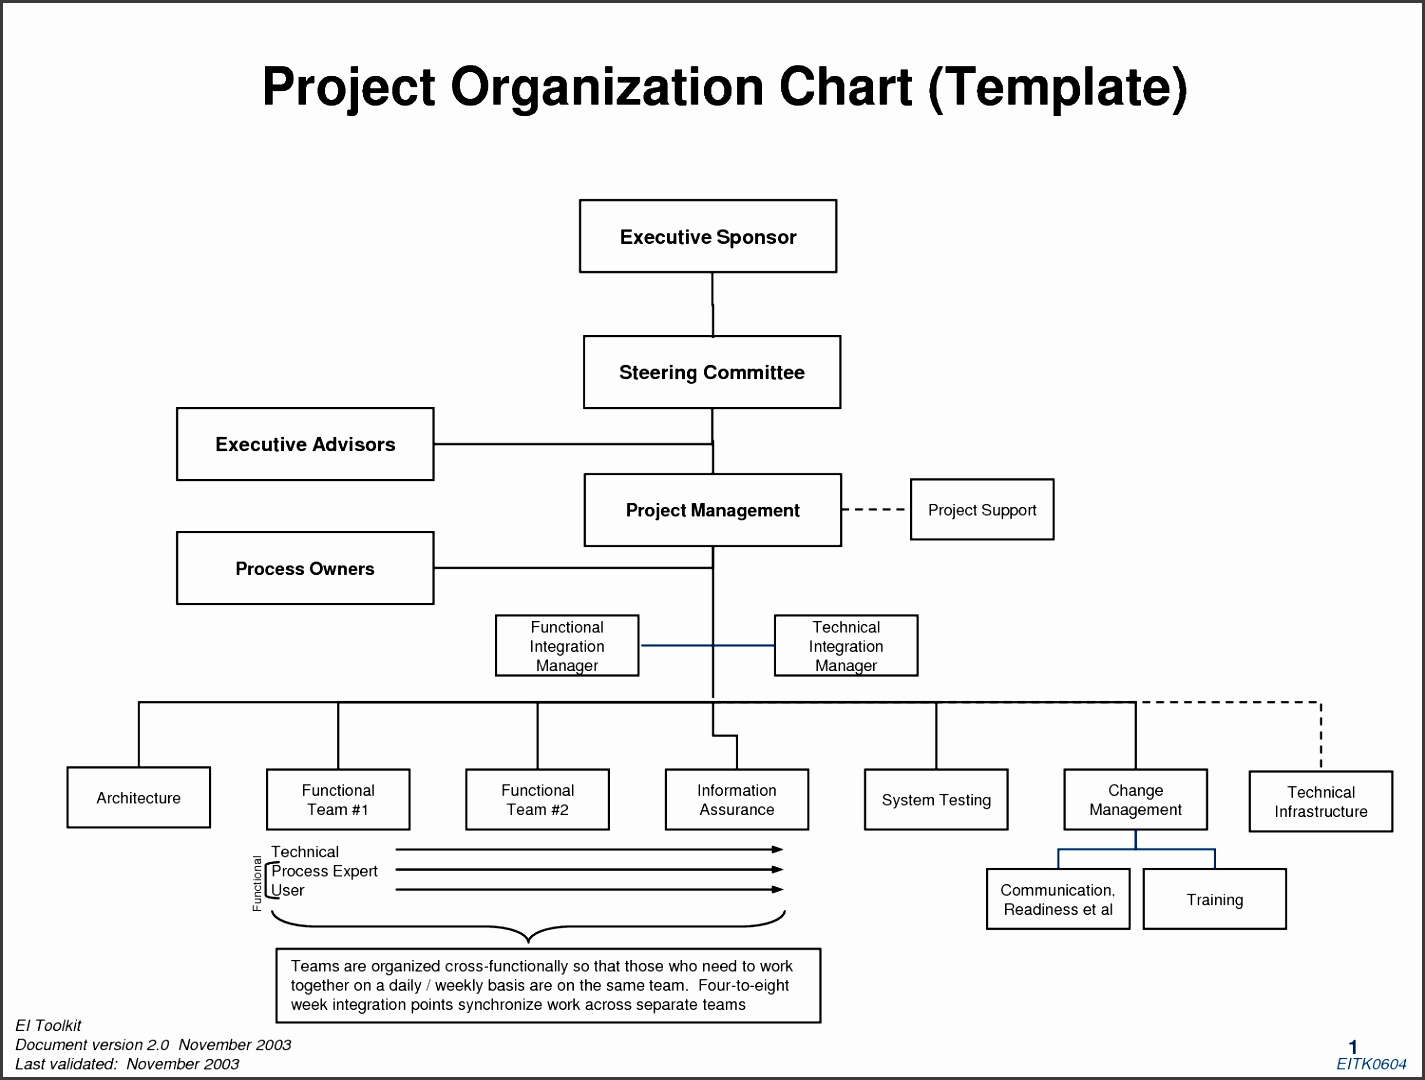 Project Organization Chart Template